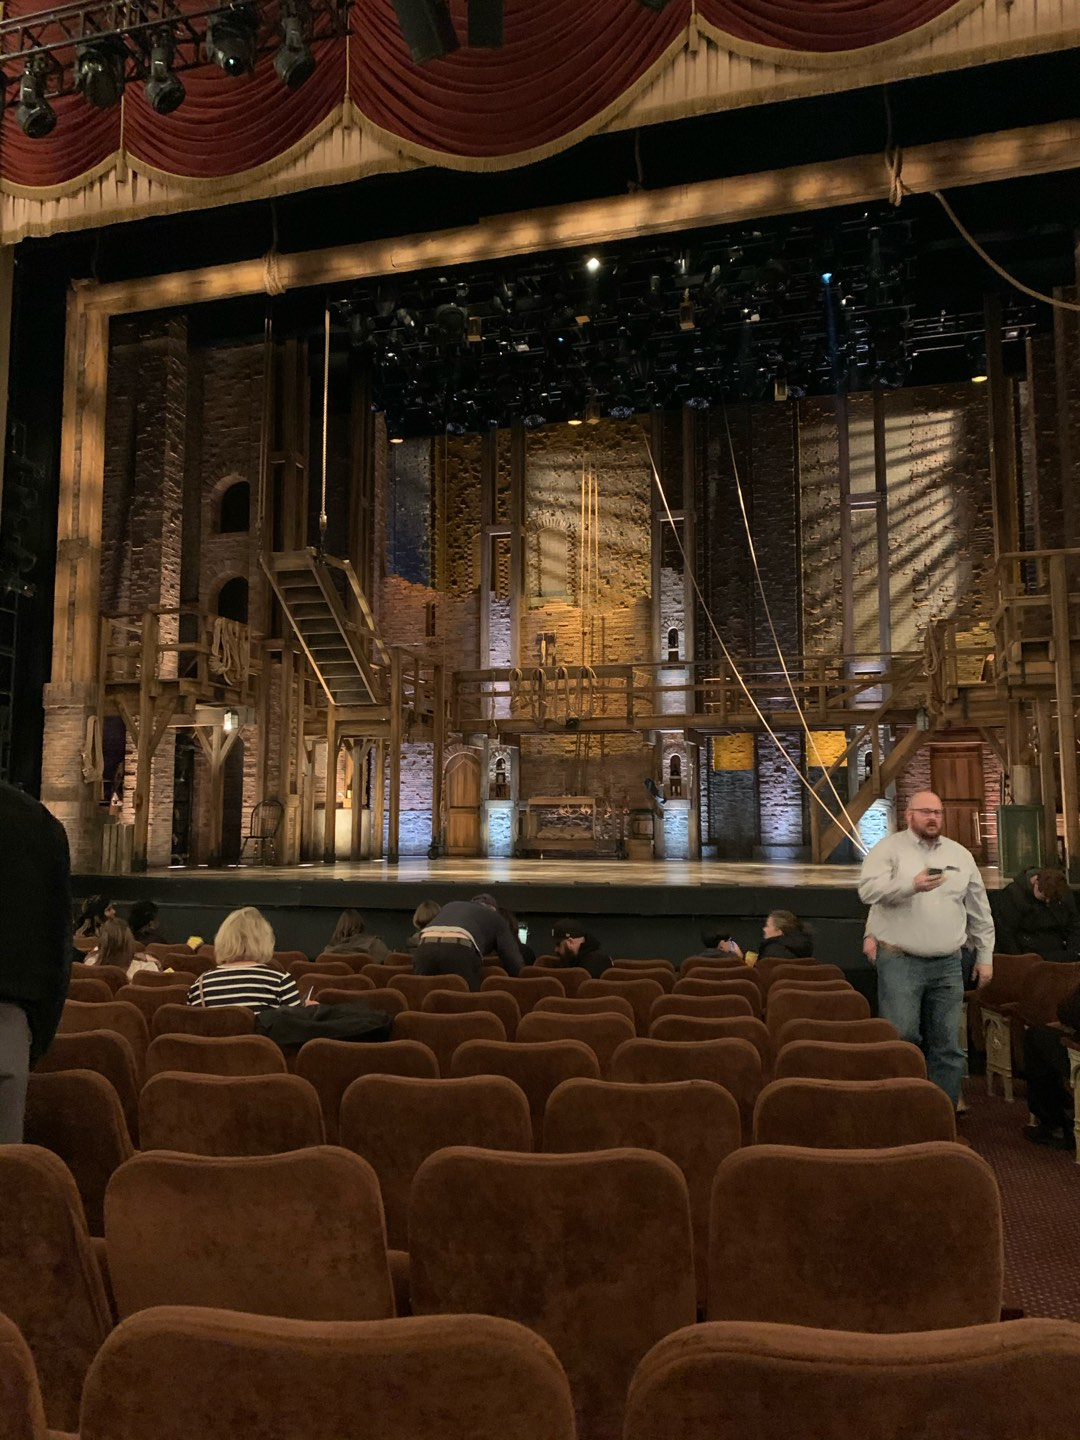 Forrest Theatre Section Cener Orch Row L (or Row 12) Seat 101